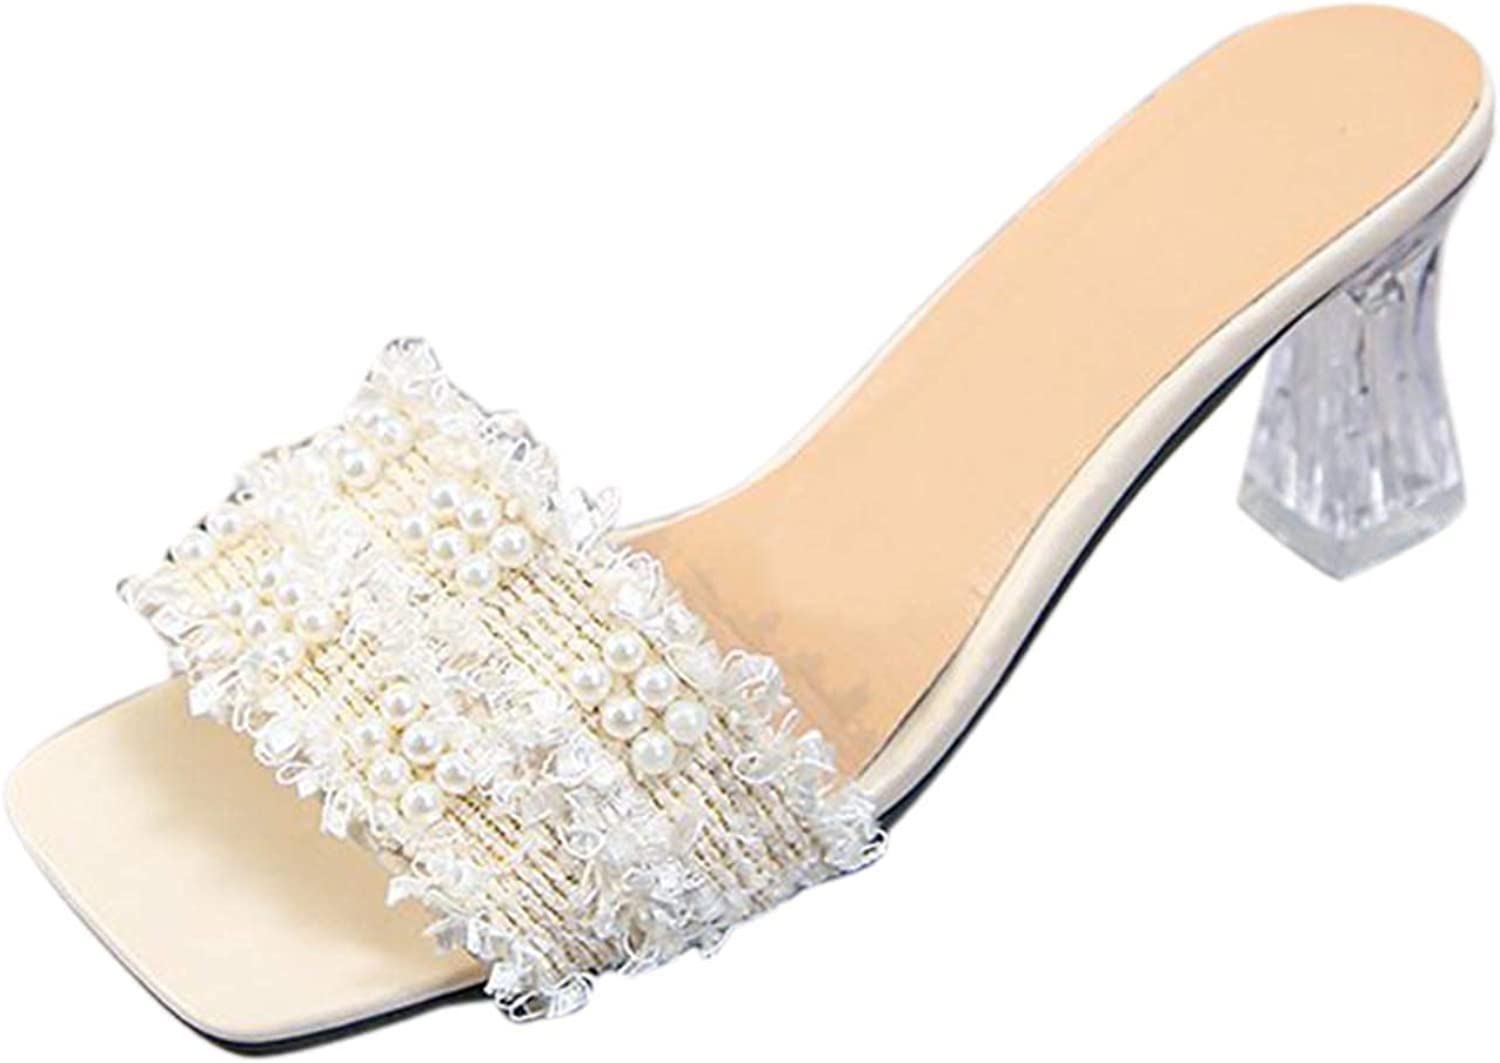 Nihewoo Sandals for Women Special price a limited time mart Casual I-Shap Pearl High-Heeled Summer